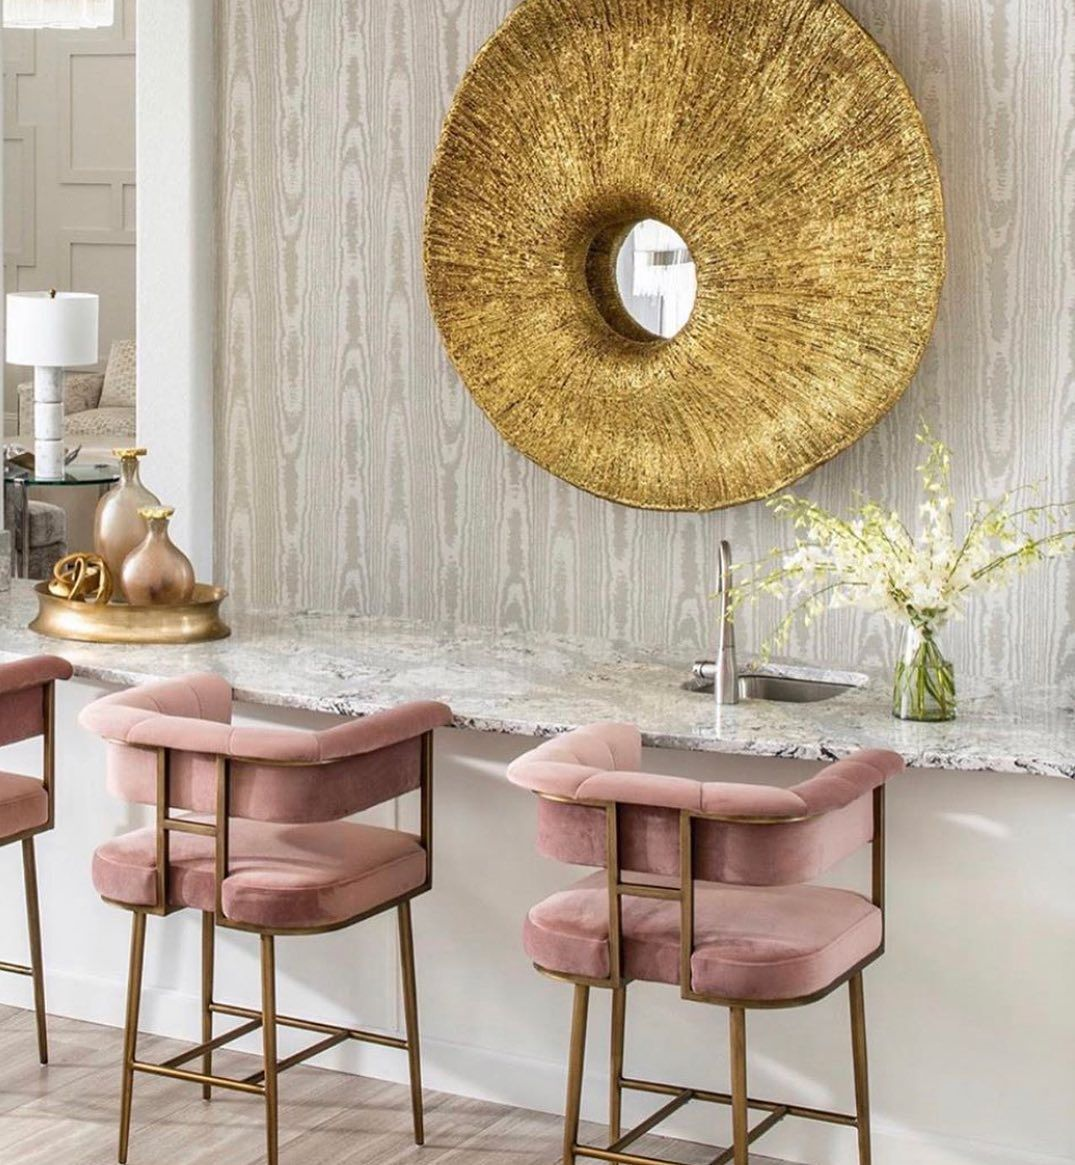 "Coco Furniture Gallery on Instagram: ""Shop these gorgeous barstools ✨✨✨ Financing available!   -  #realtor #realestatemiami #love #midtownmiami #interiordesign #southflorida…"""